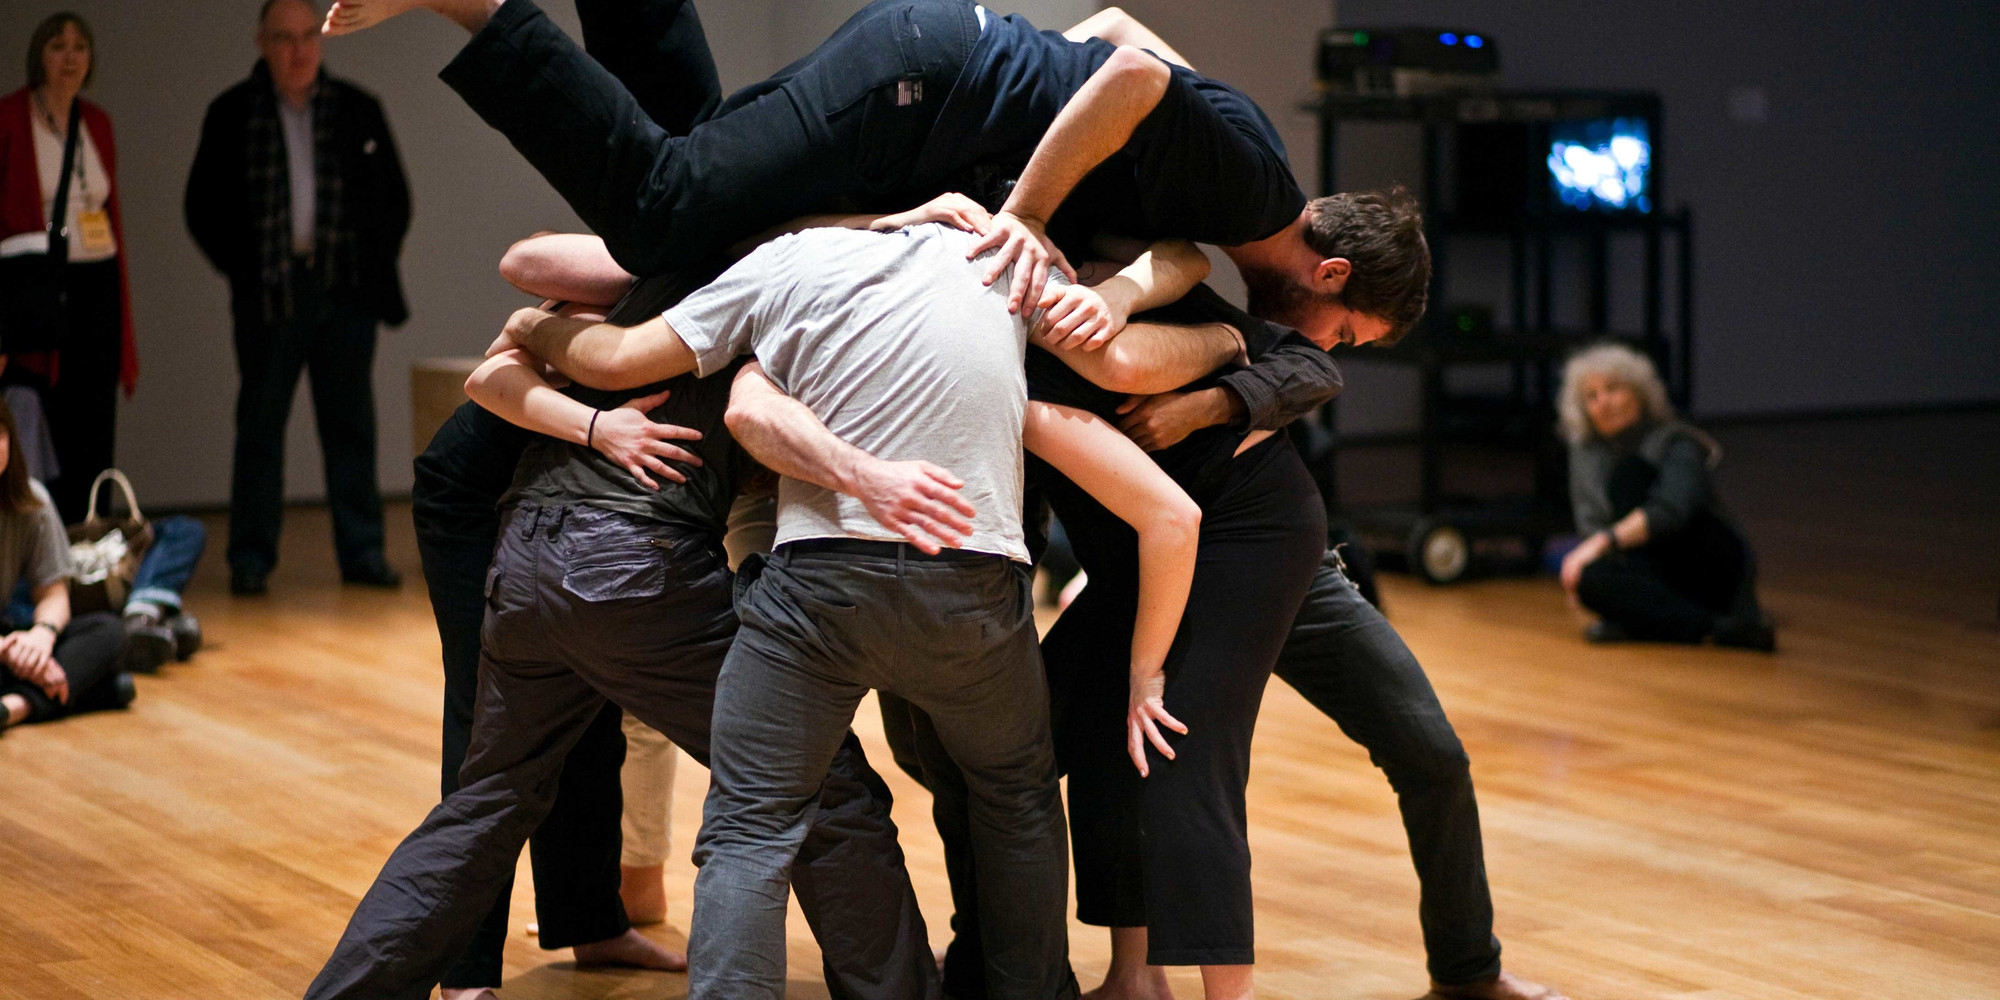 Simone Forti. Huddle. 1961. Performance, 10 min. Committee on Media and Performance Art Funds. © 2018 The Museum of Modern Art, New York